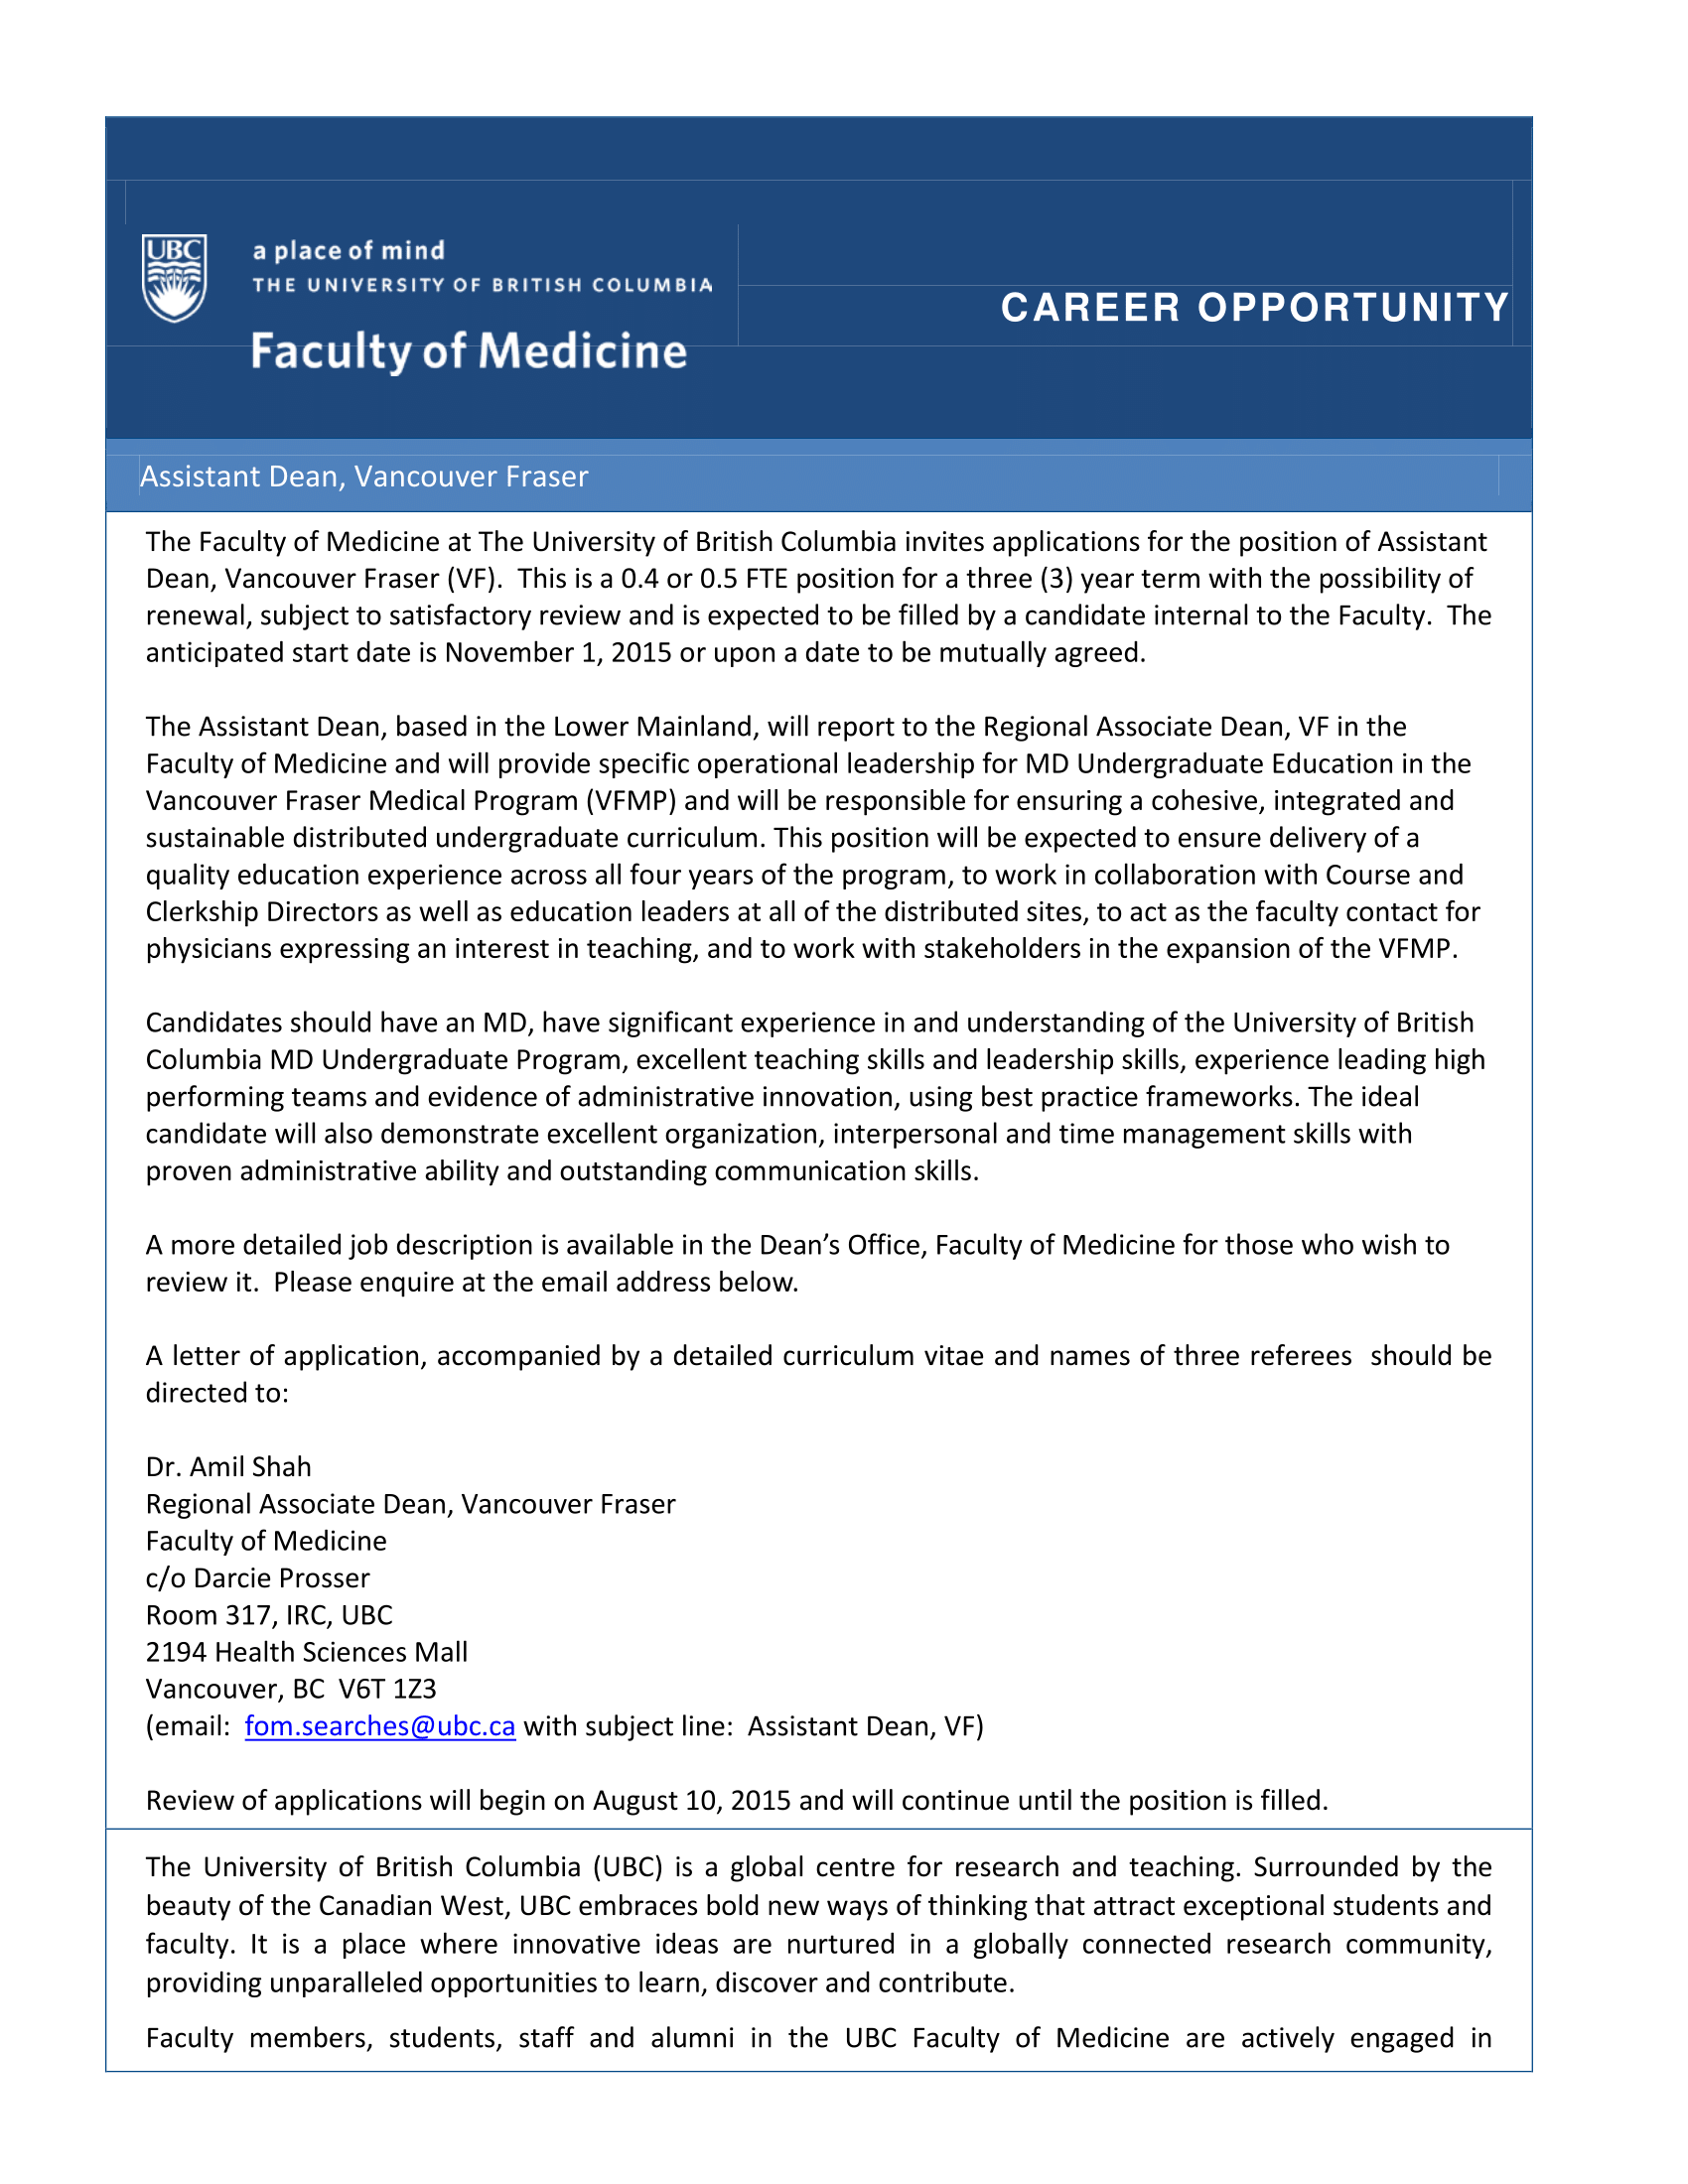 15-24 FMDO - Assistant Dean VF - Internal Advert - FINAL - July 7 2015-1